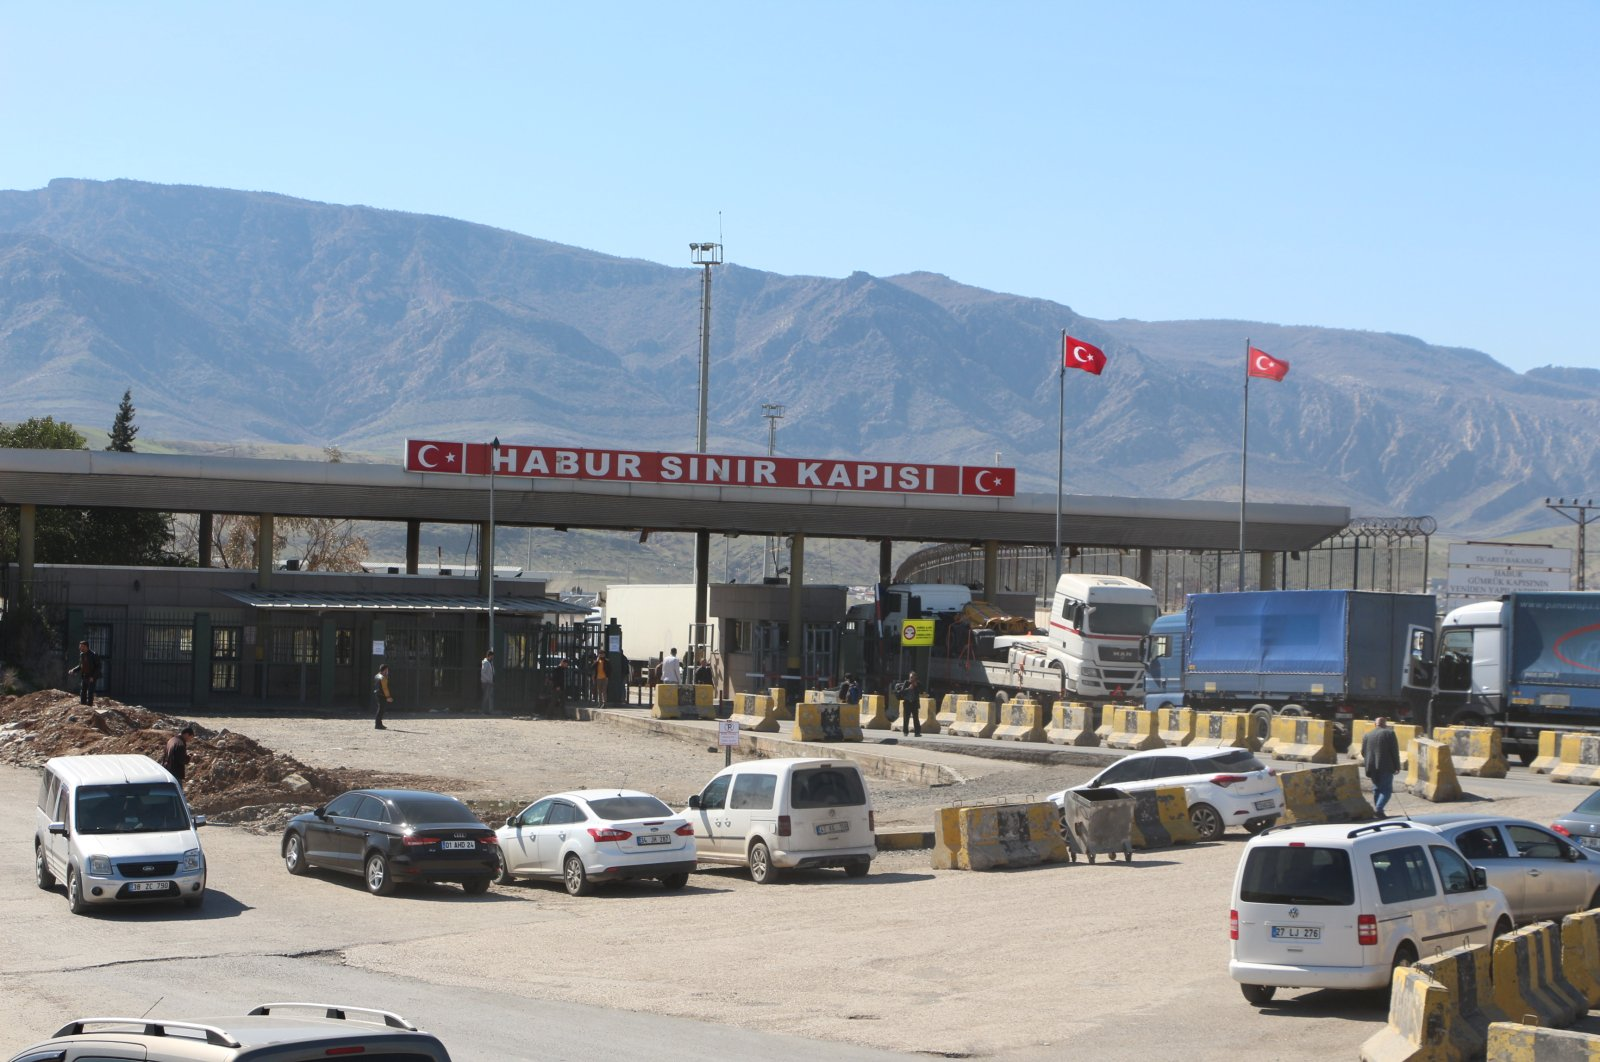 Habur border gate in southeastern Turkey's Şırnak province bordering Turkey. (DHA Photo)